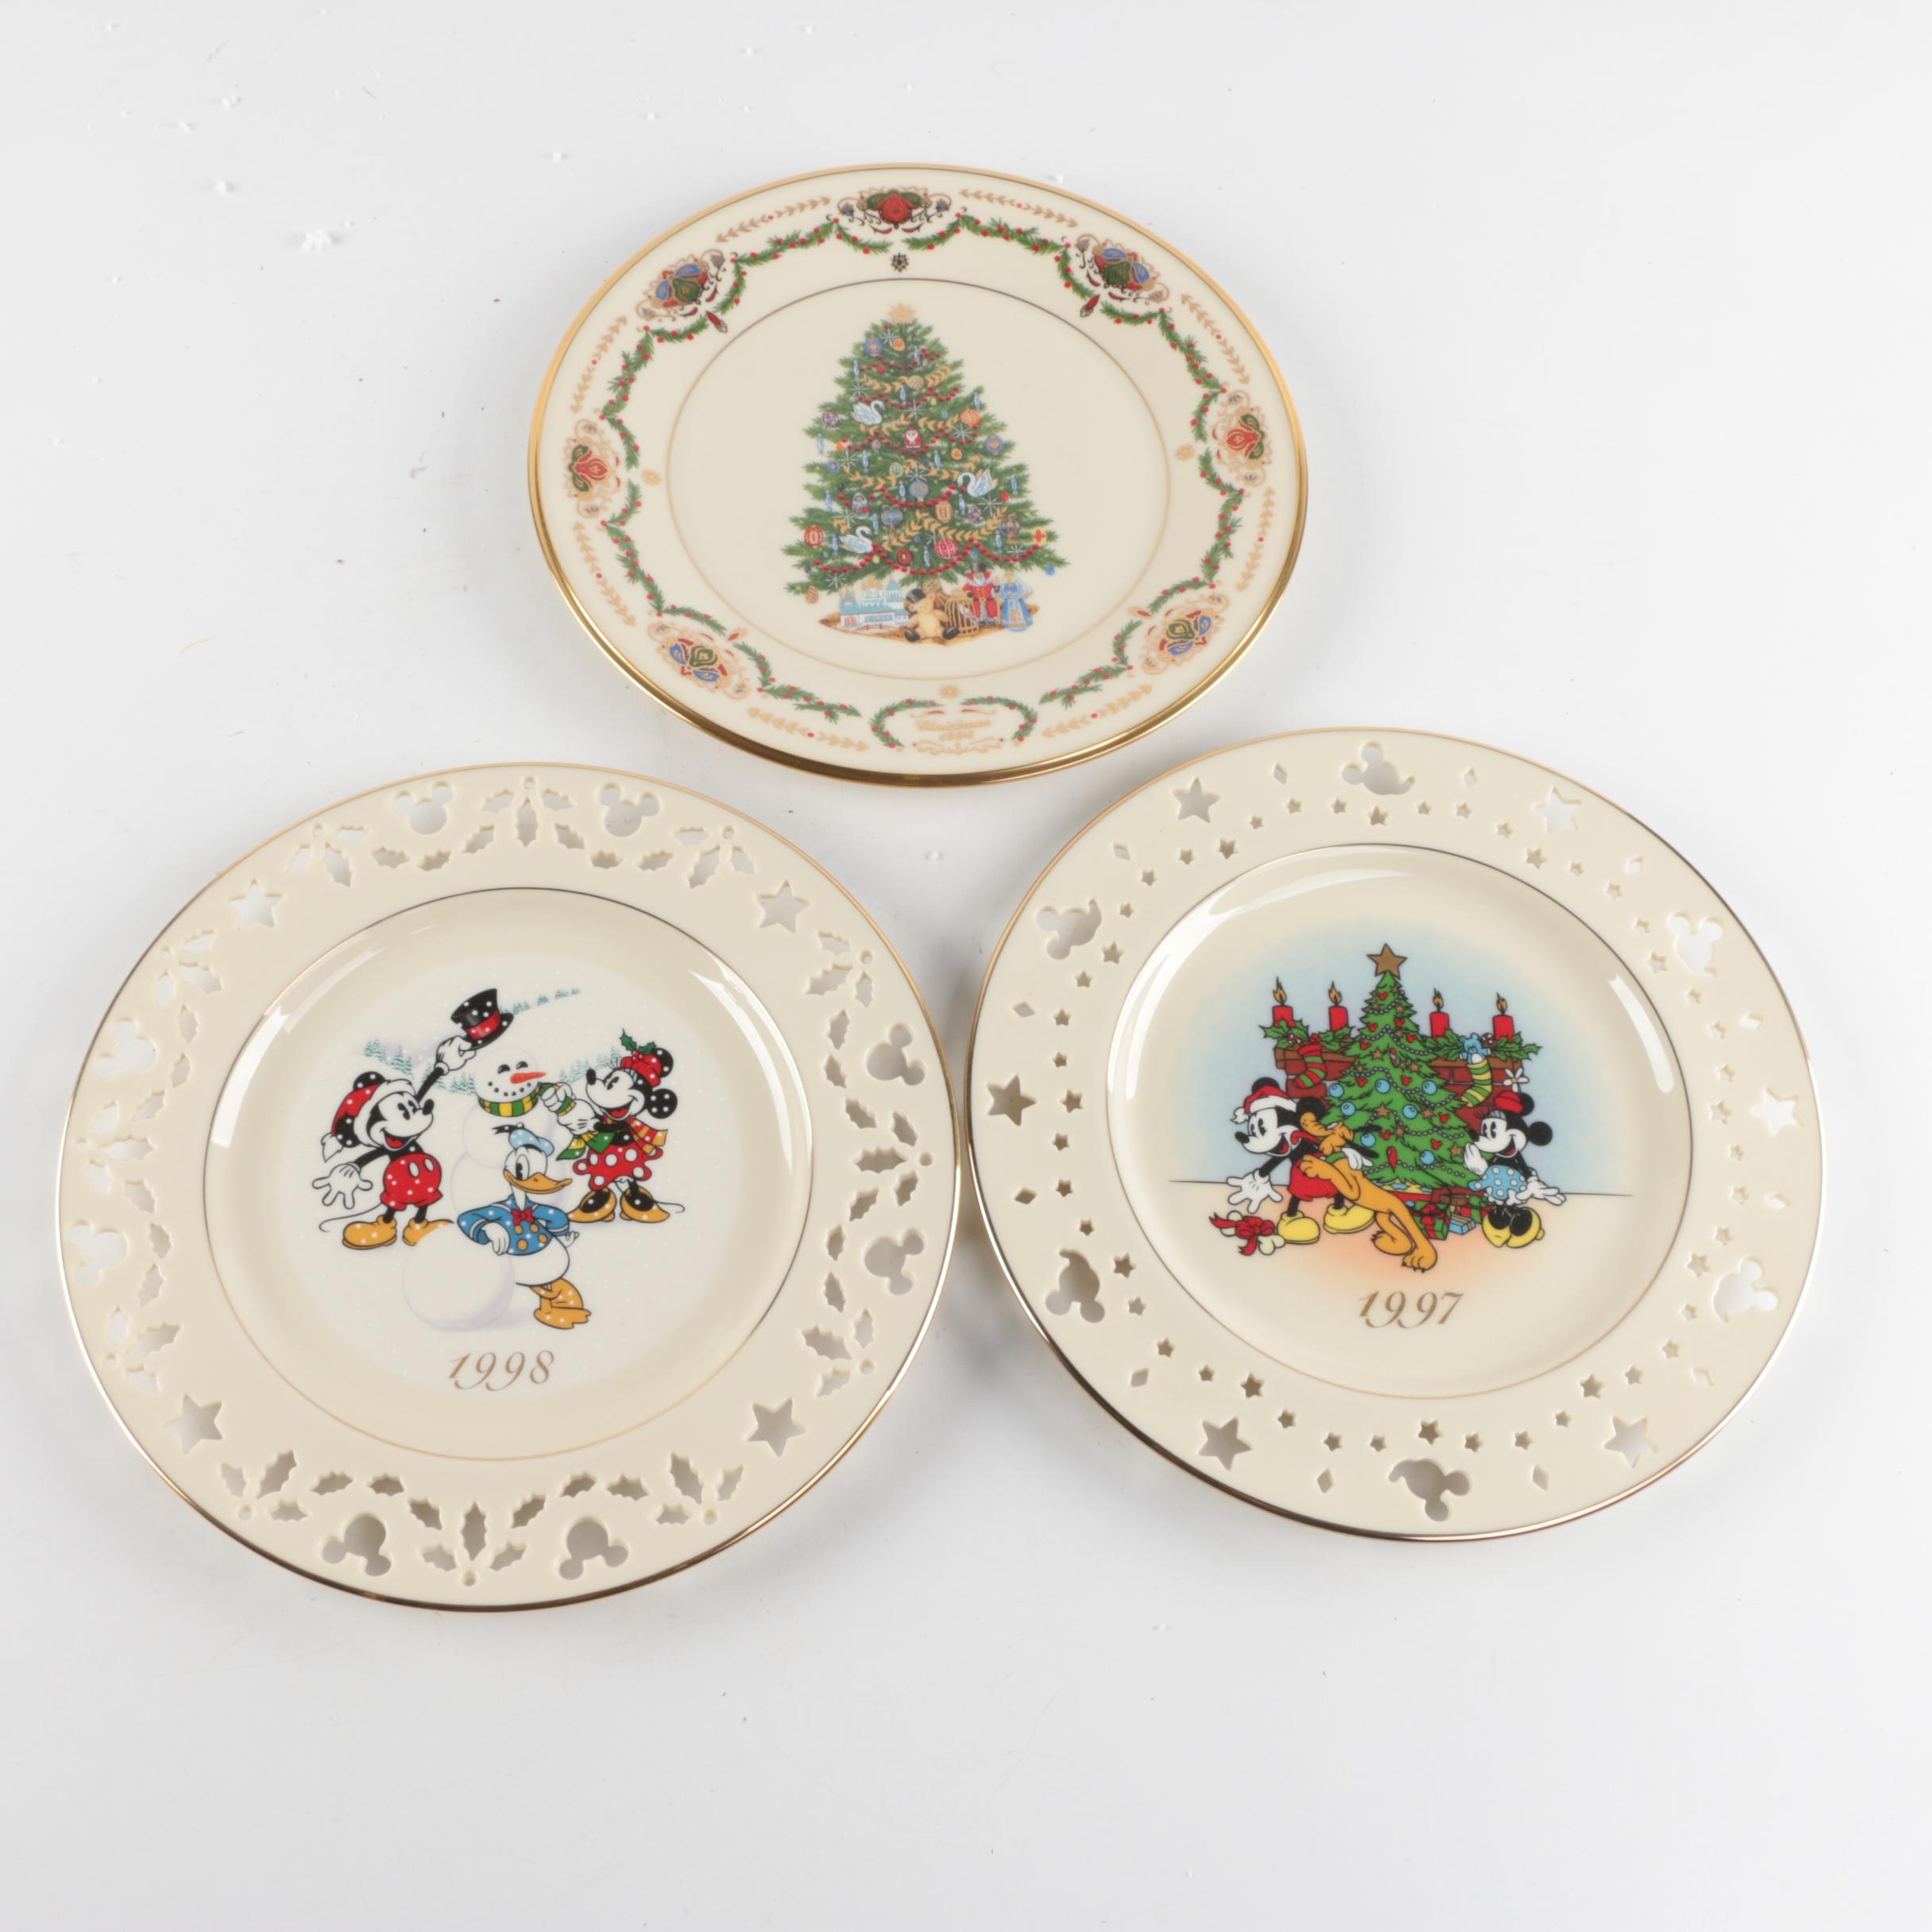 Collection of Lenox Christmas Plates including Disney ...  sc 1 st  EBTH.com & Collection of Lenox Christmas Plates including Disney : EBTH